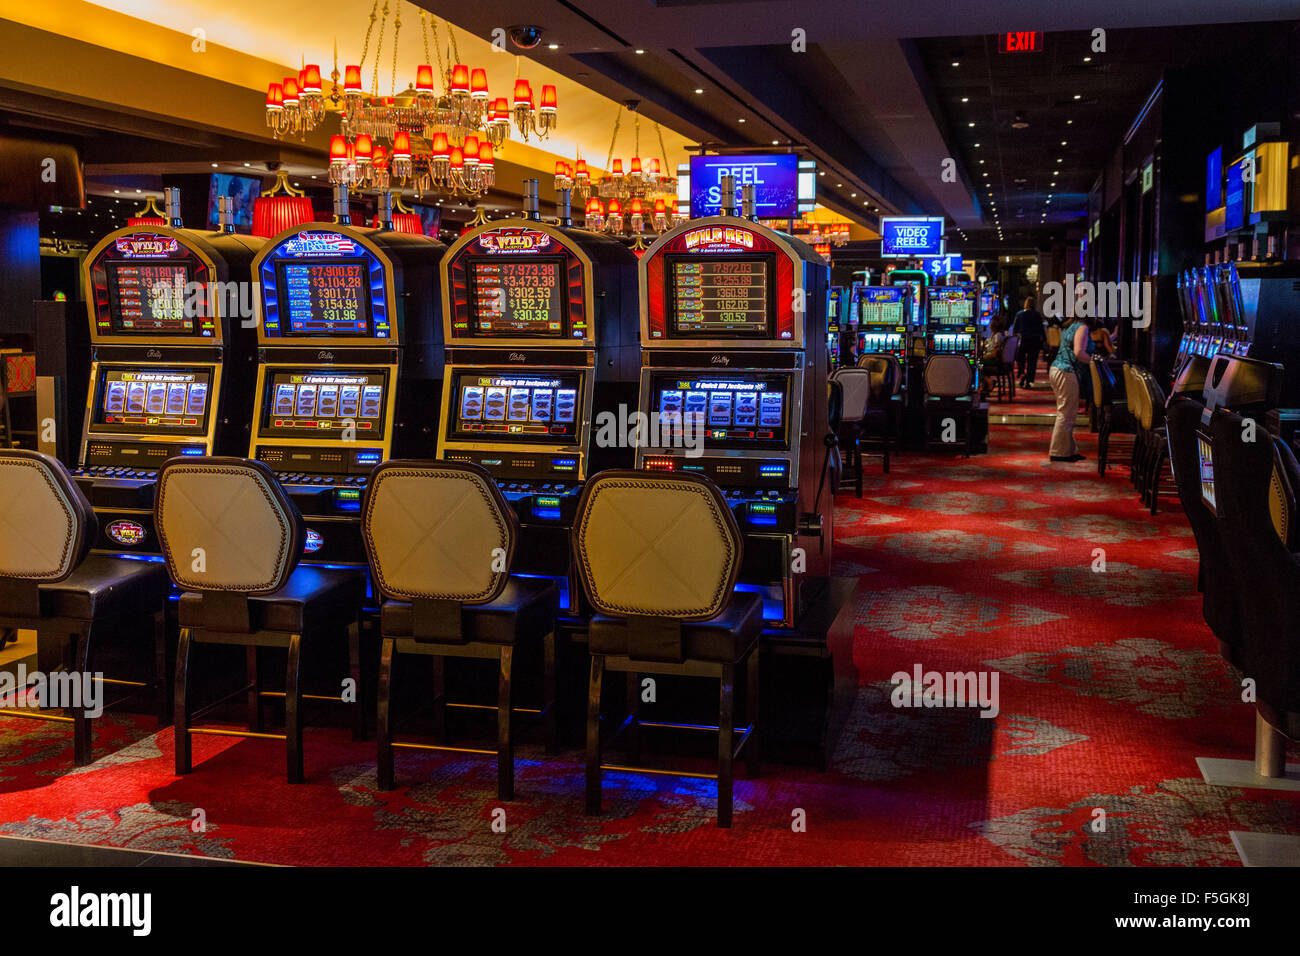 Slot finder las vegas nv vegas poker chips uk